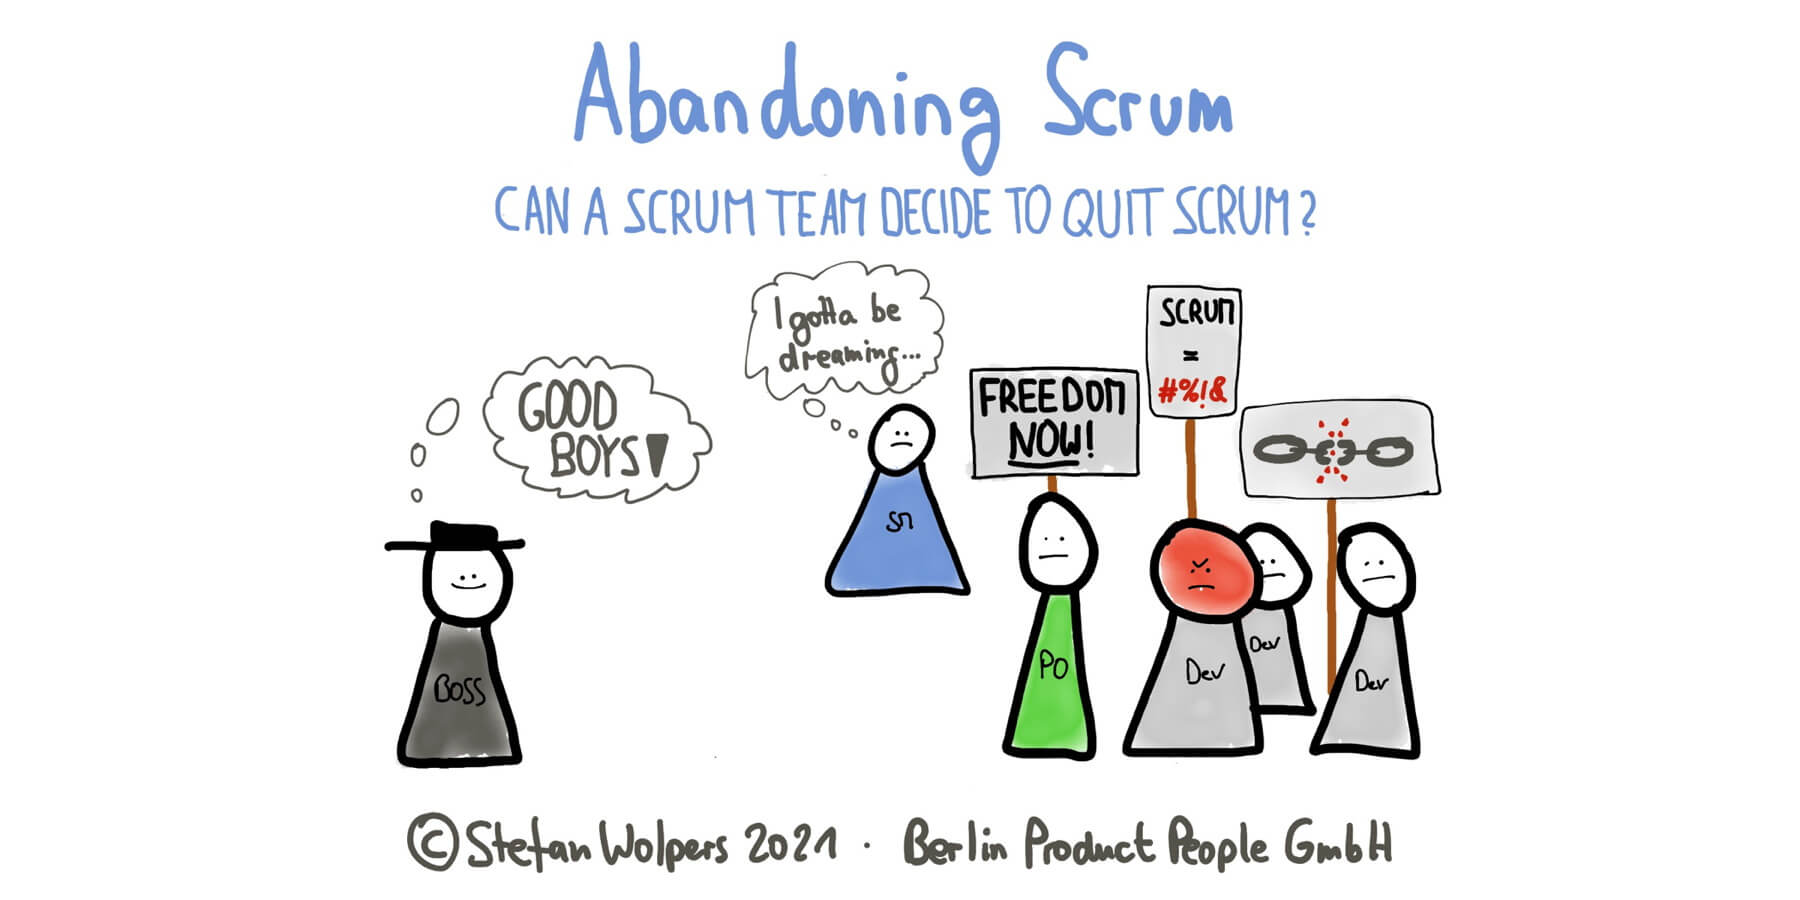 Abandoning Scrum: Can a Scrum Team Decide to Quit Scrum?